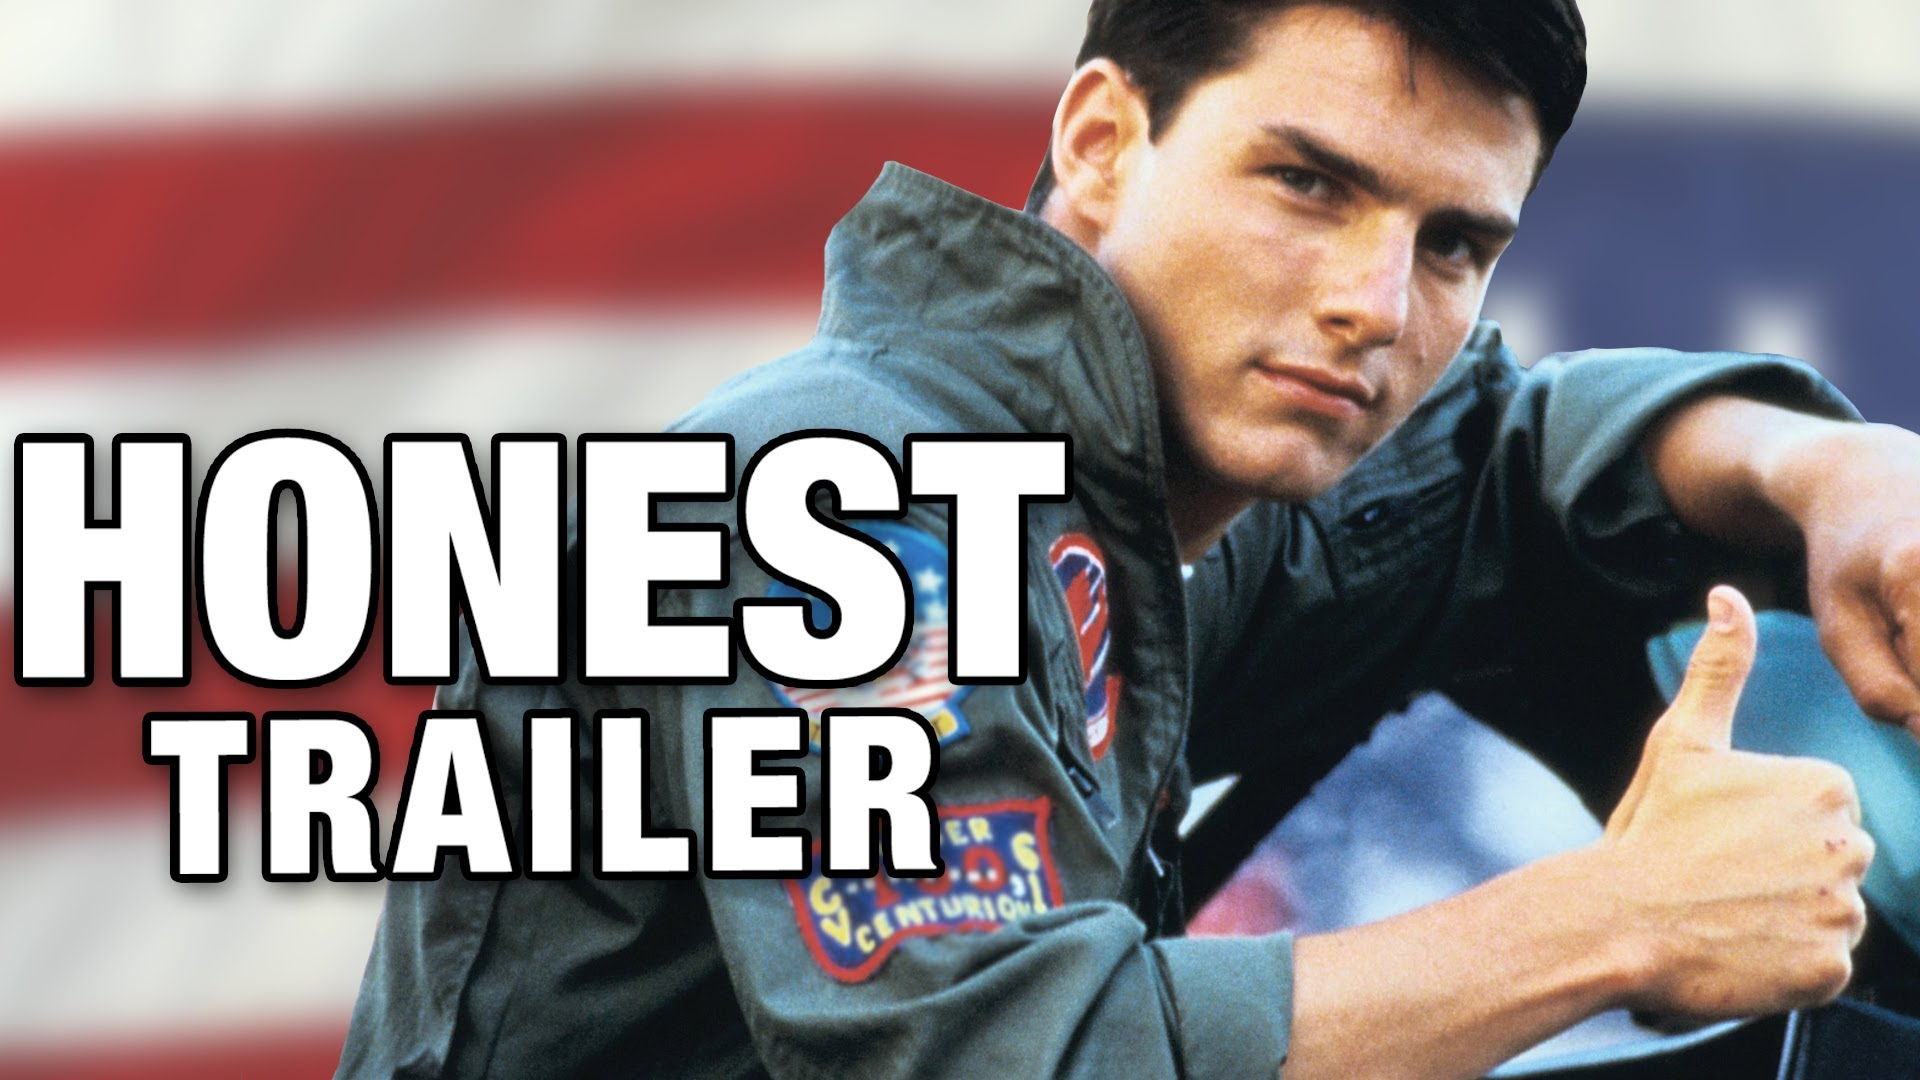 https://i0.wp.com/laughingsquid.com/wp-content/uploads/2014/06/honest-movie-trailers-top-gun-by.jpg